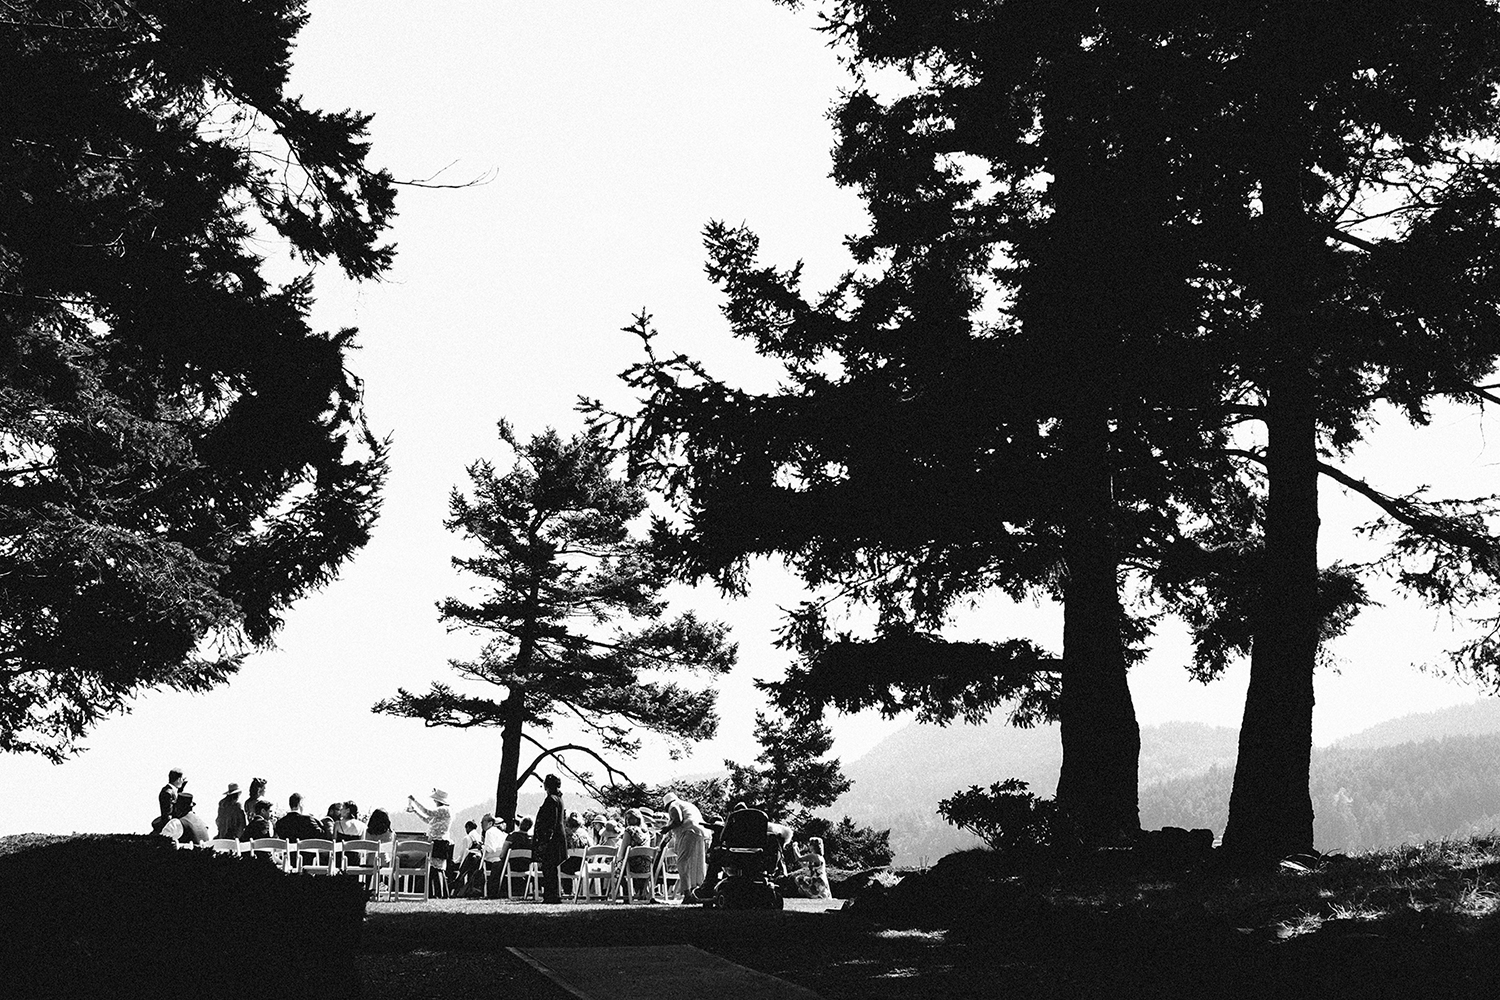 Wedding on the Point Lawn at Rosario, overlooking Cascade Bay below